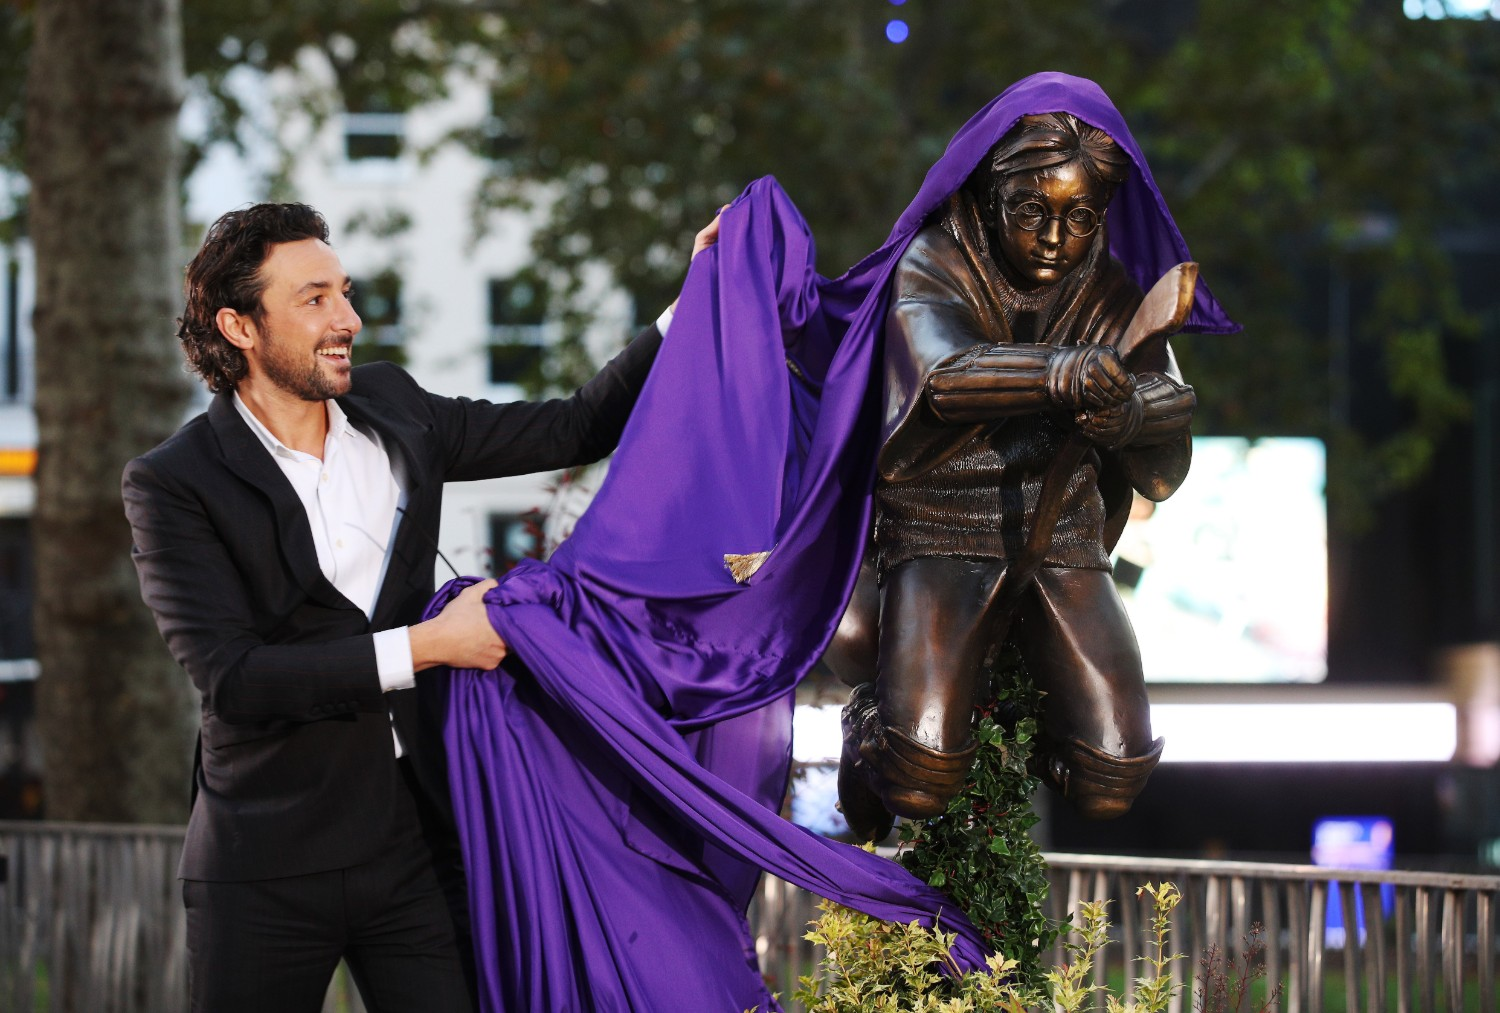 Alex Zane unveiling the Harry Potter statue